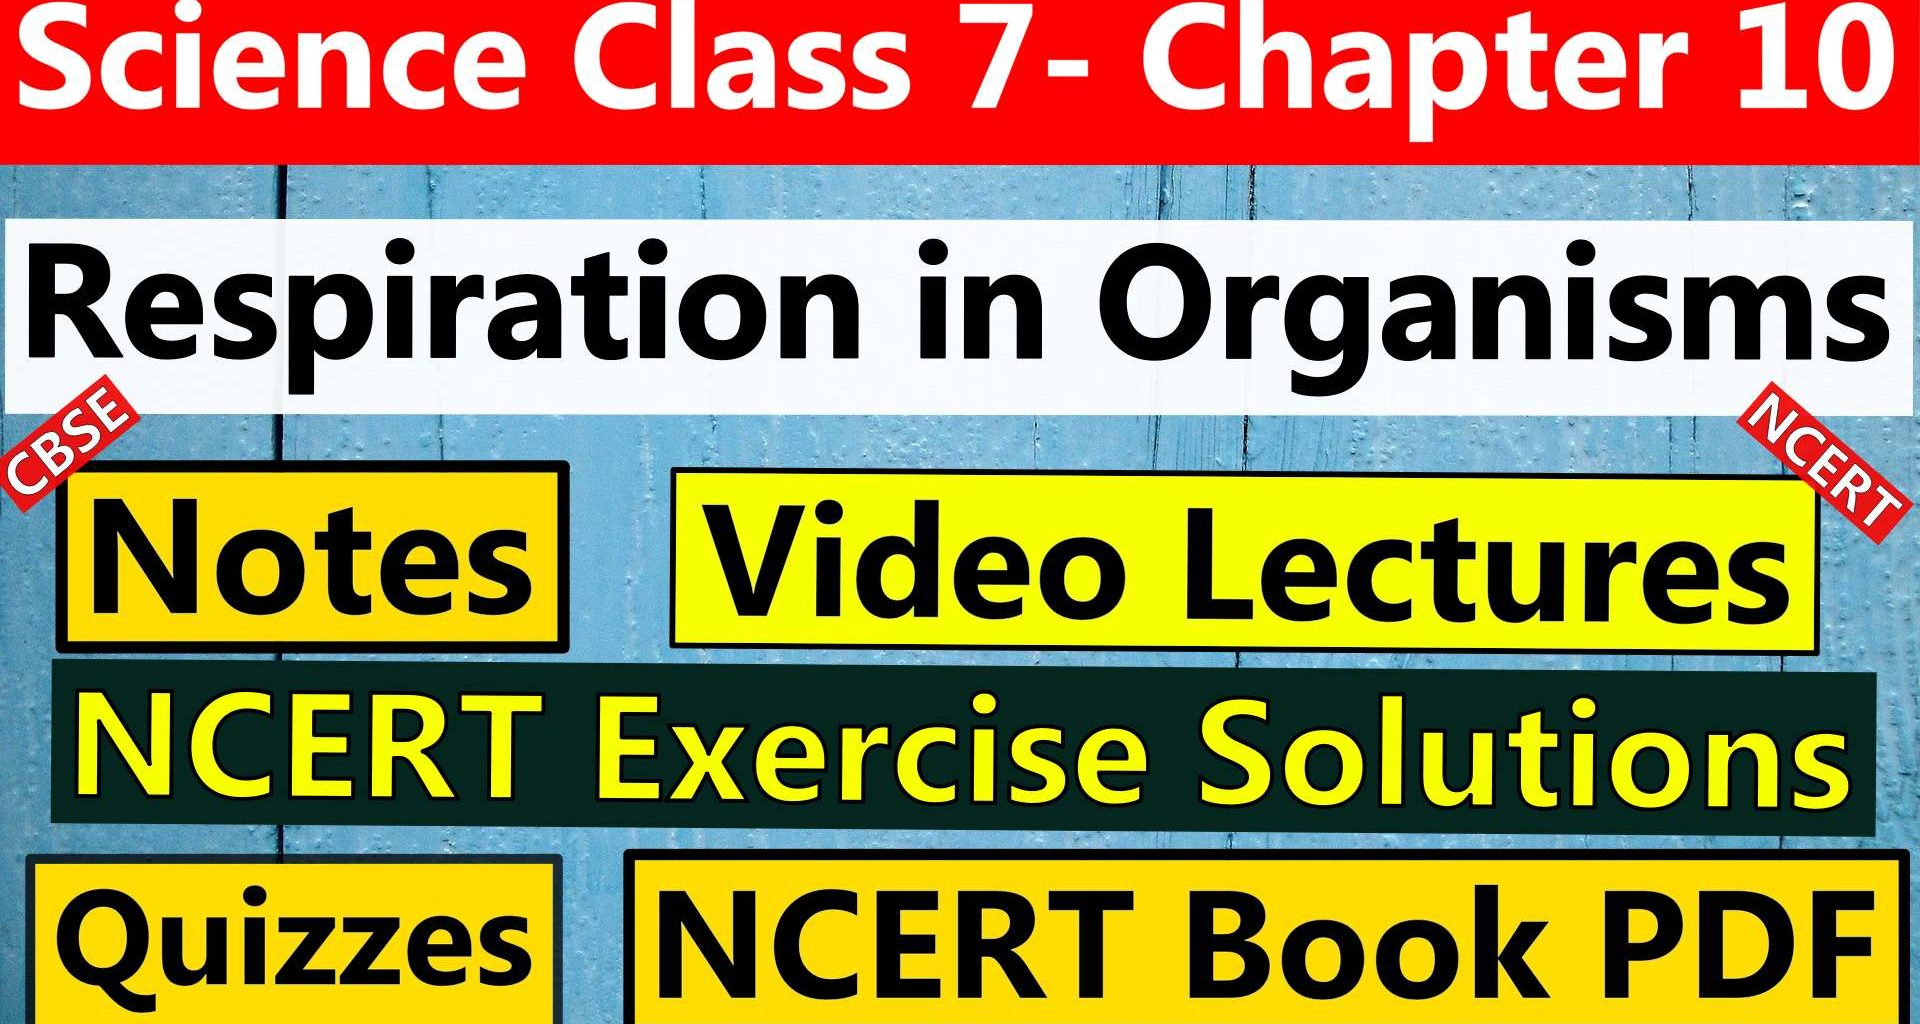 Science Class 7 Chapter 10 Respiration in Organisms